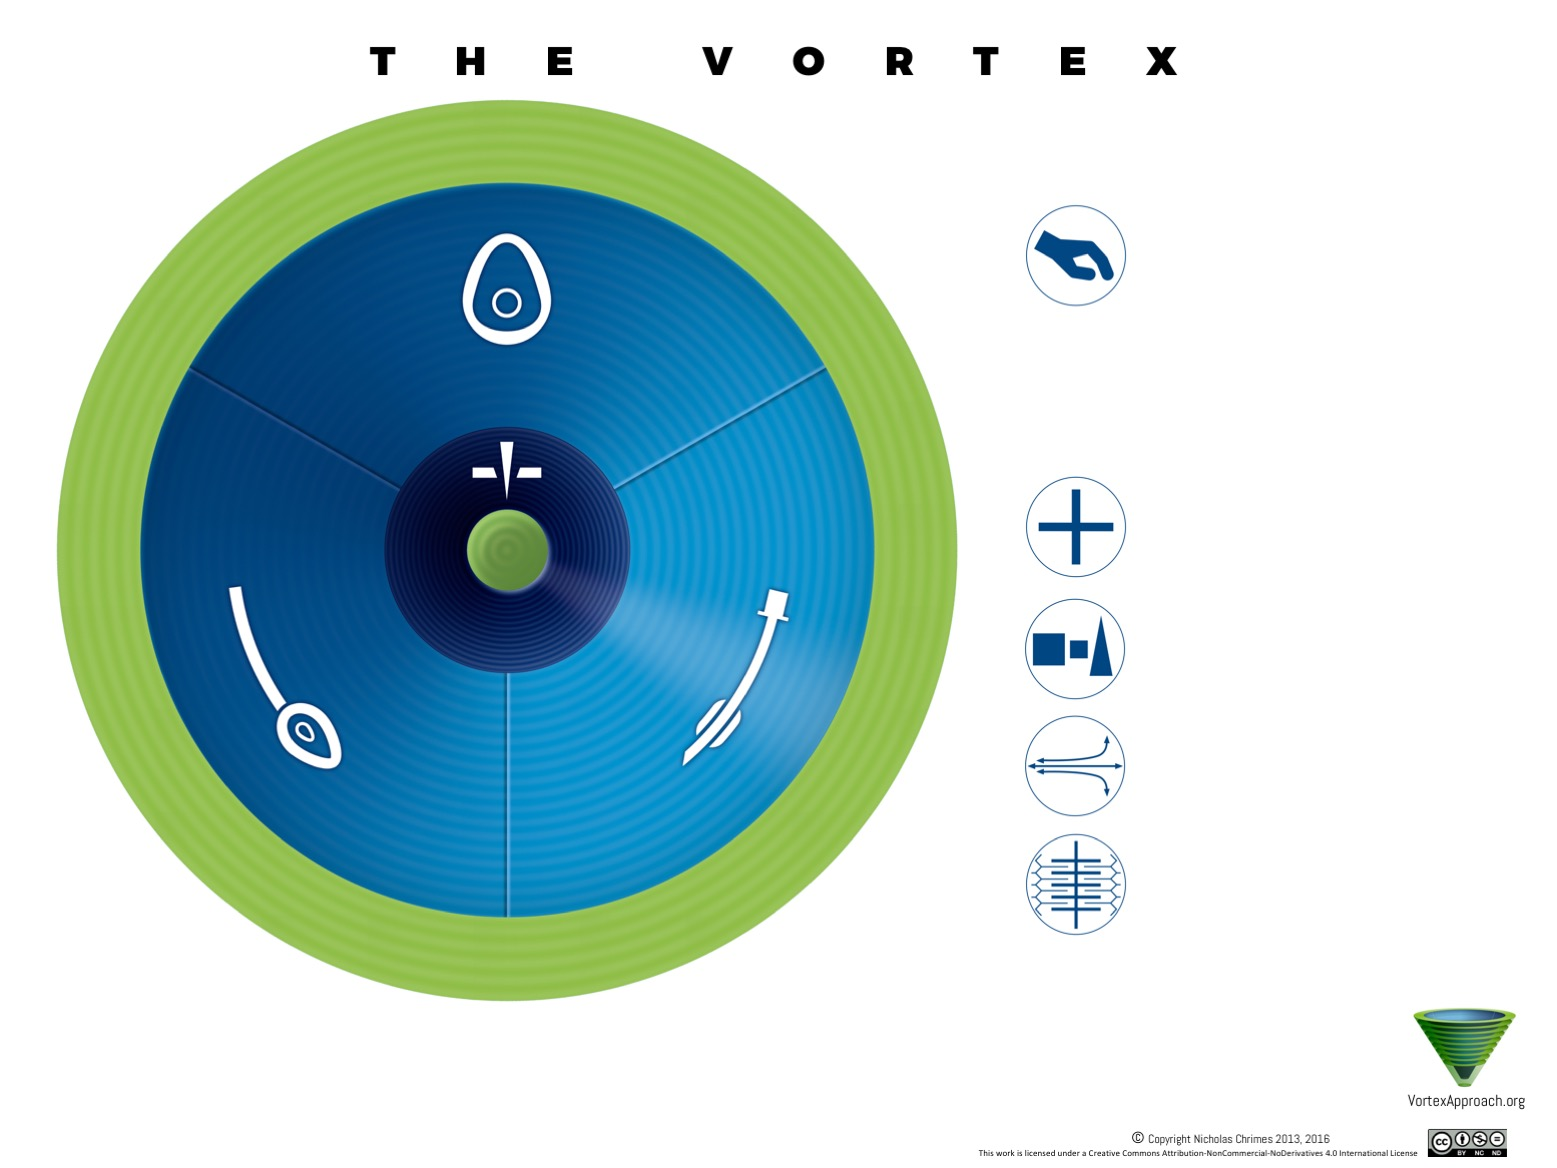 Vortex implementation tool - international edition. User license allows annotation with translation of text on English version into any language.